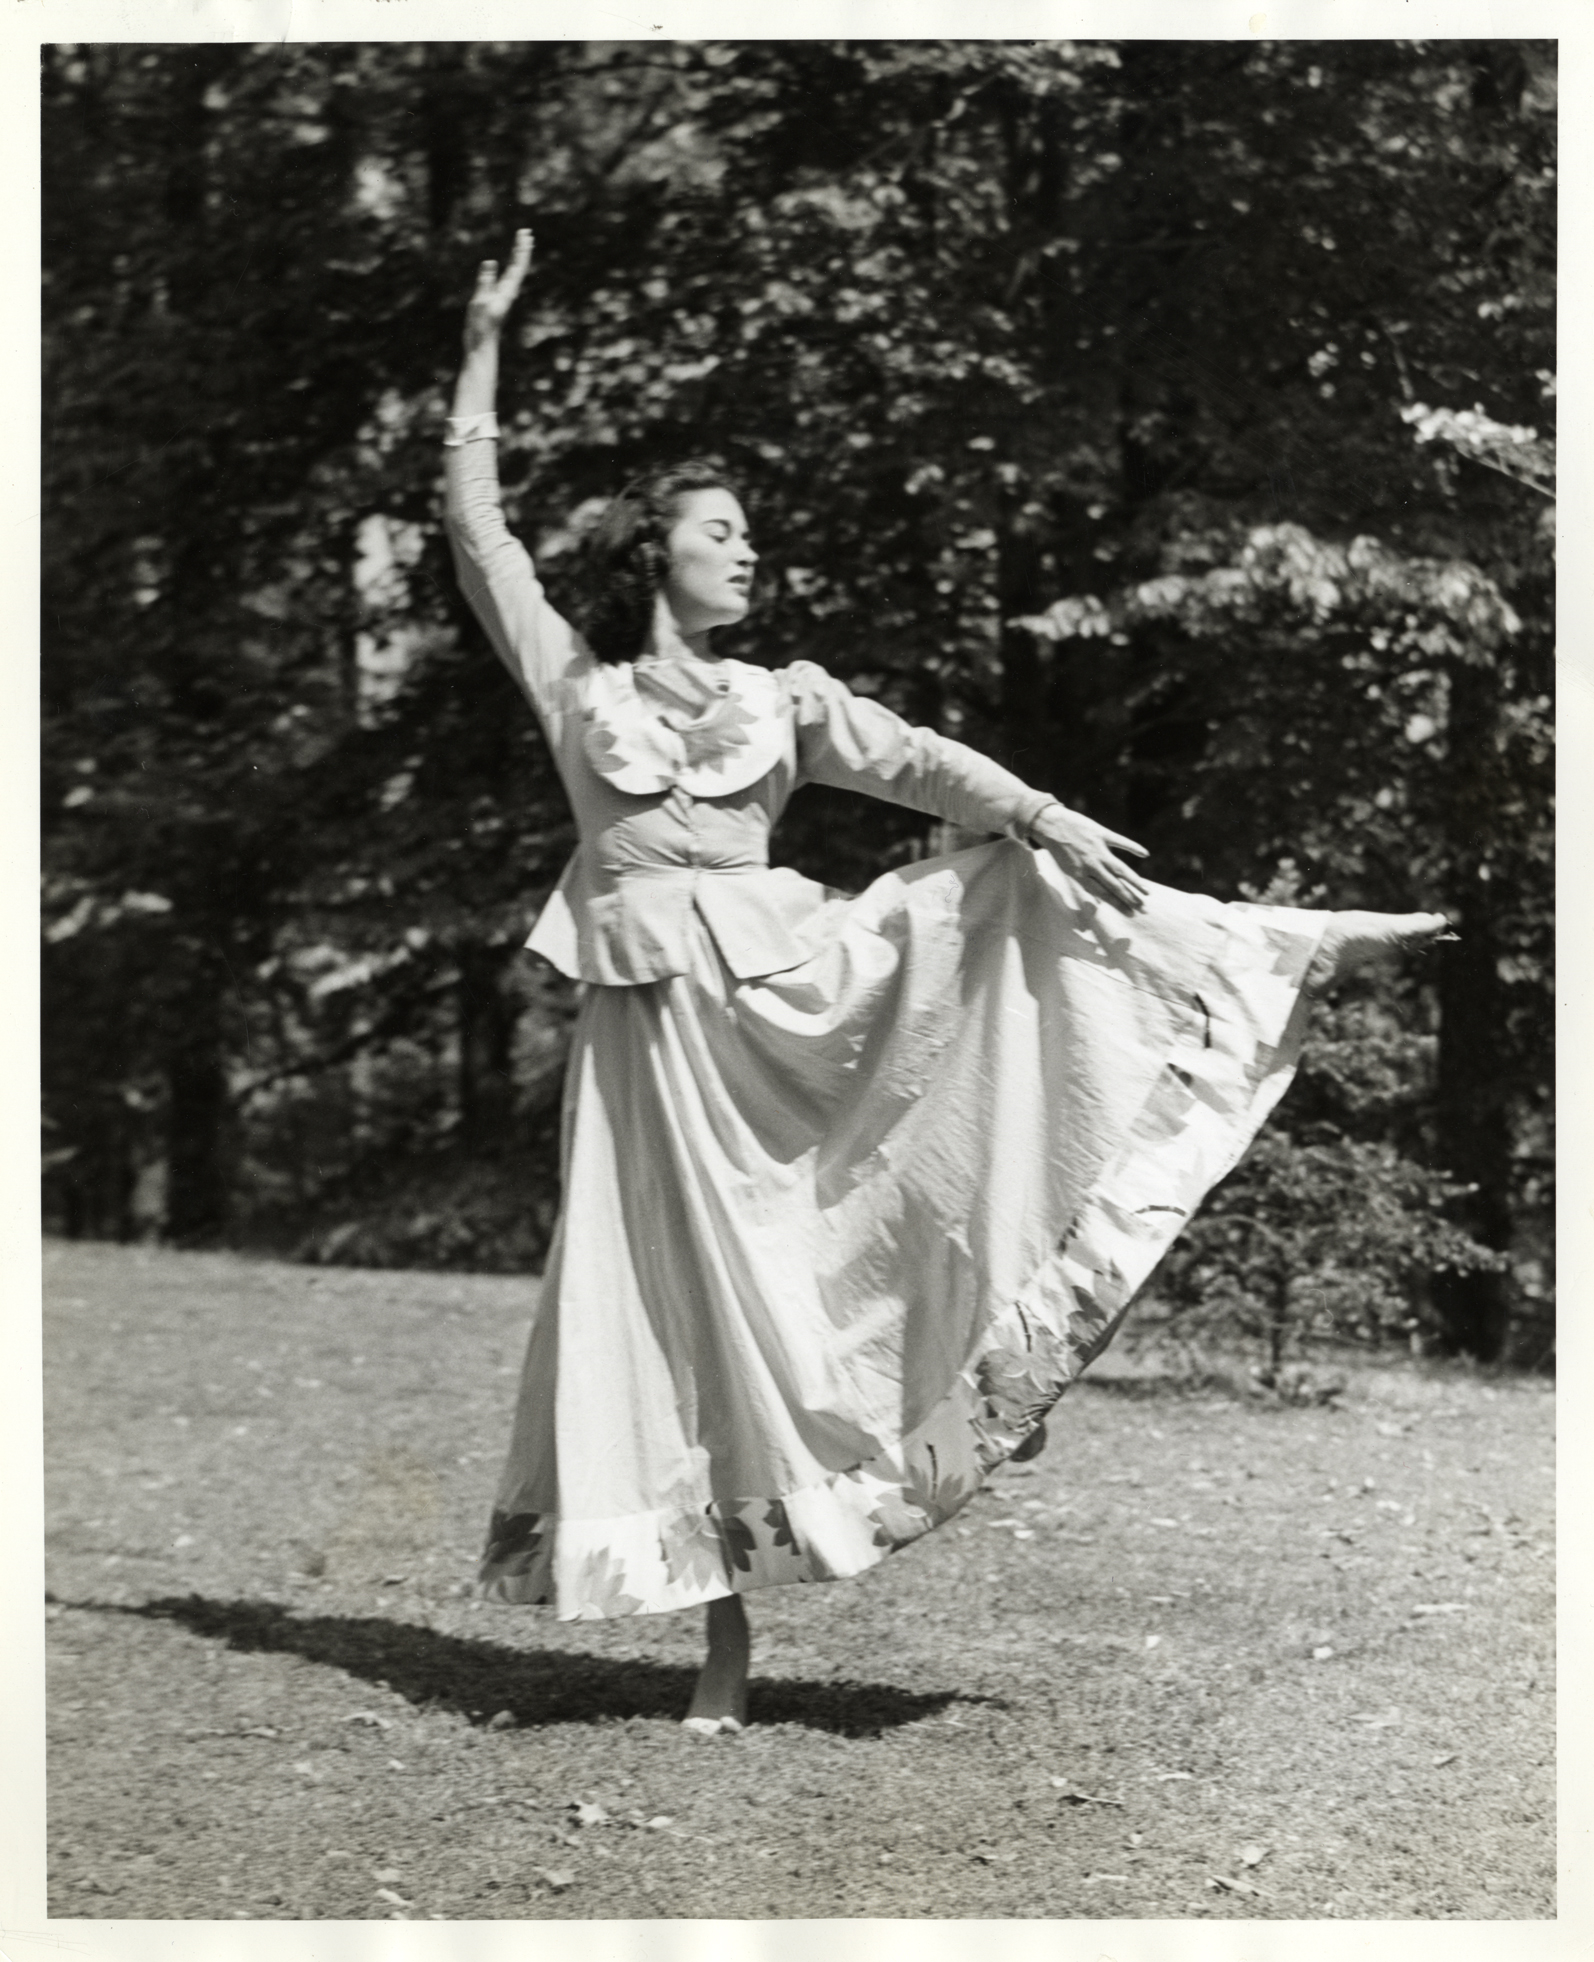 Myron Russell portraying Joan of Arc in the first May Day ballet program, 1941